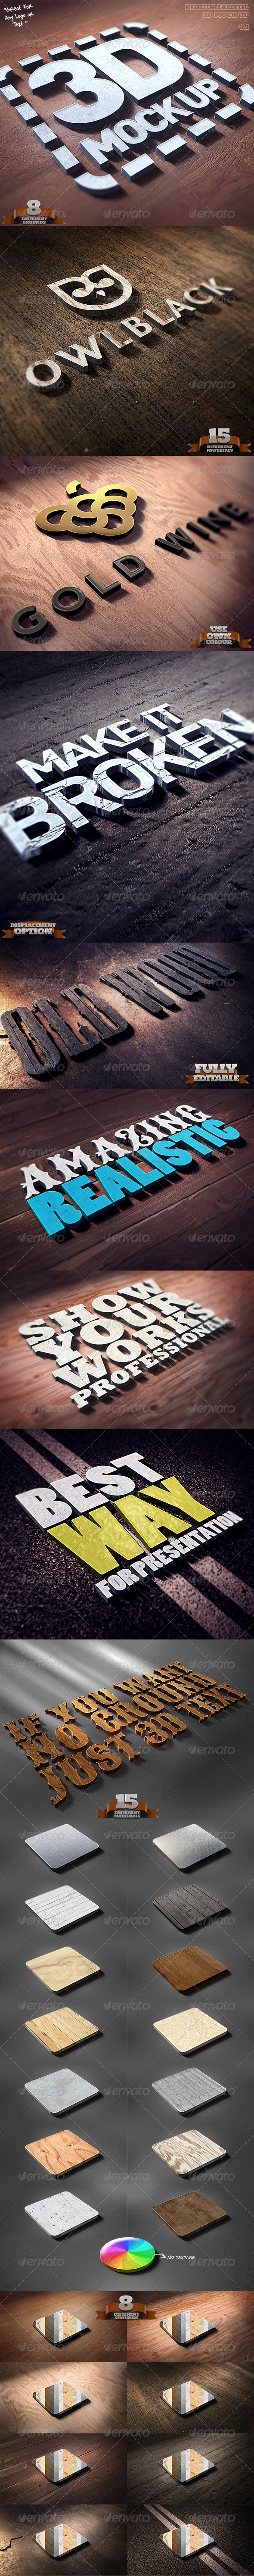 GraphicRiver Photorealistic 3D Mock Up 3476402